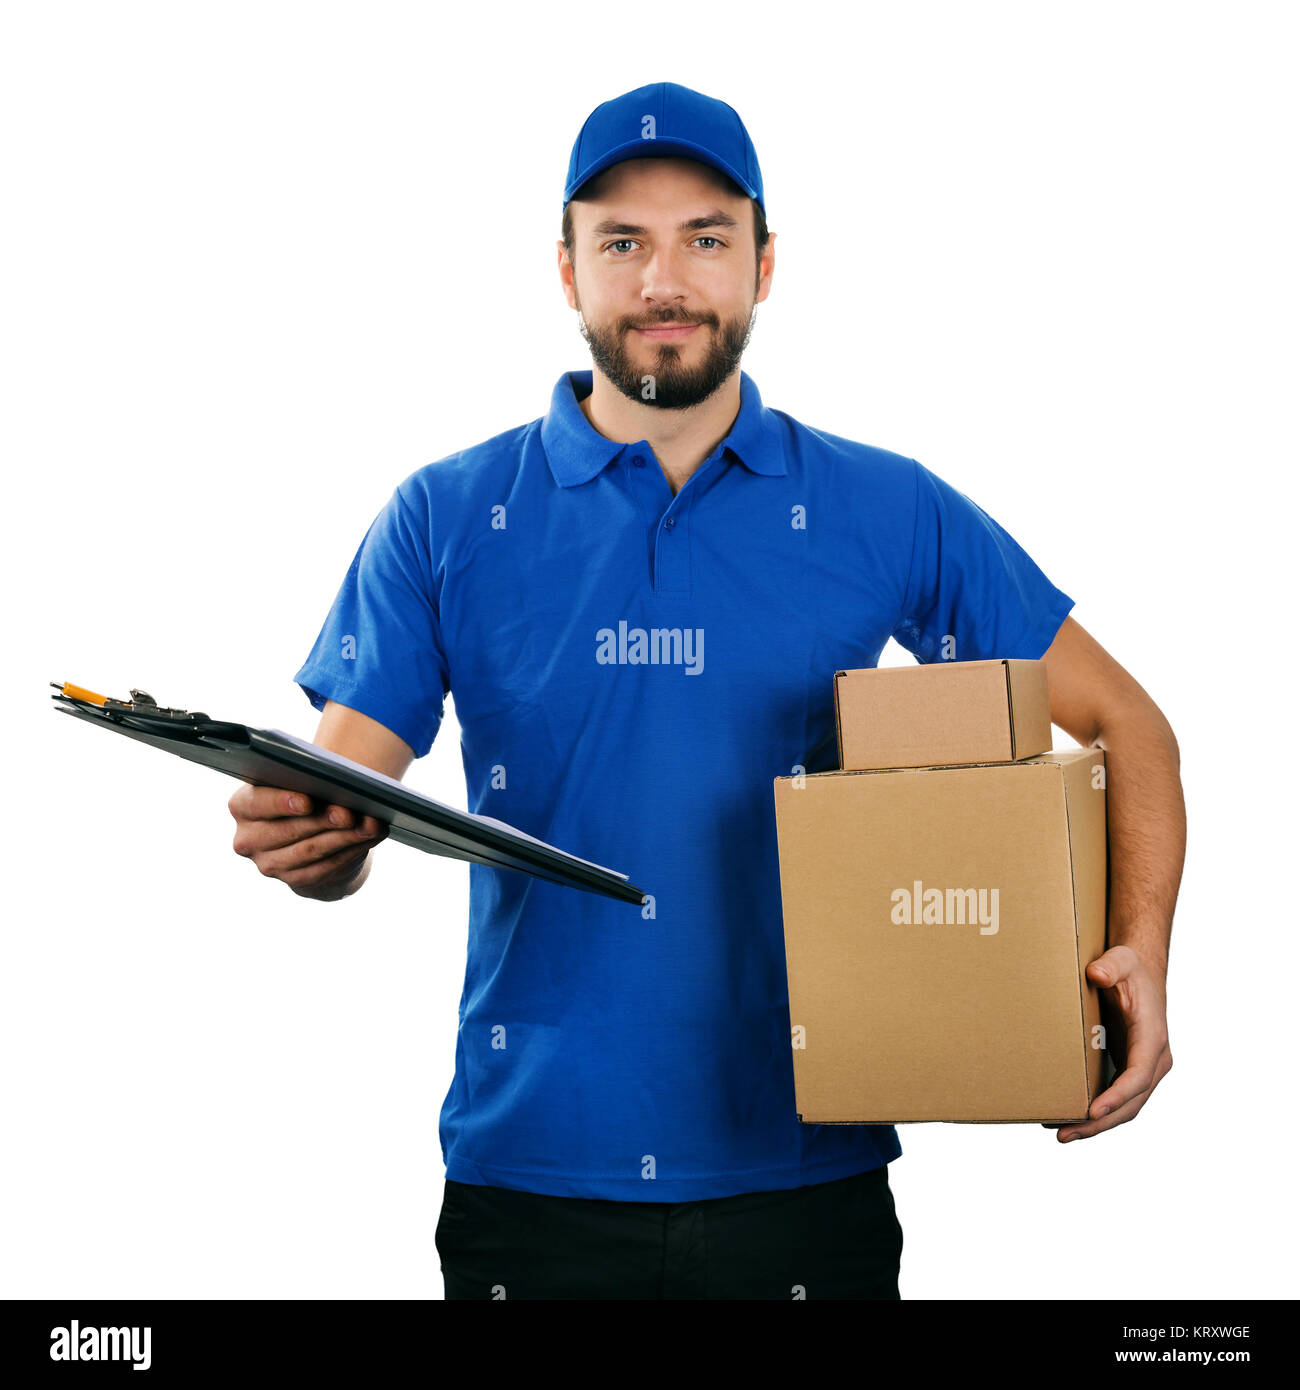 deliveryman with boxes and clipboard isolated on white background - Stock Image